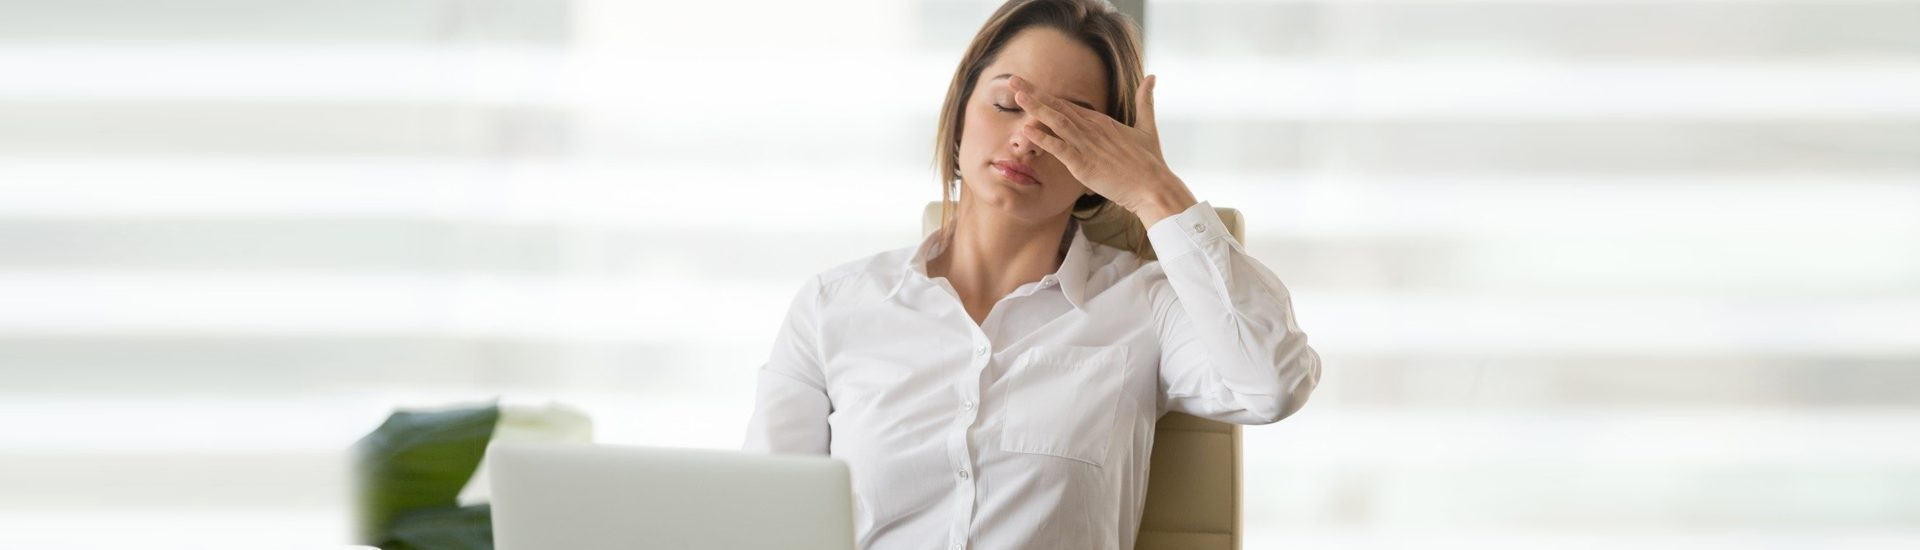 Adrenal Fatigue: What Is It, How Does It Happen, and How Is It Treated?